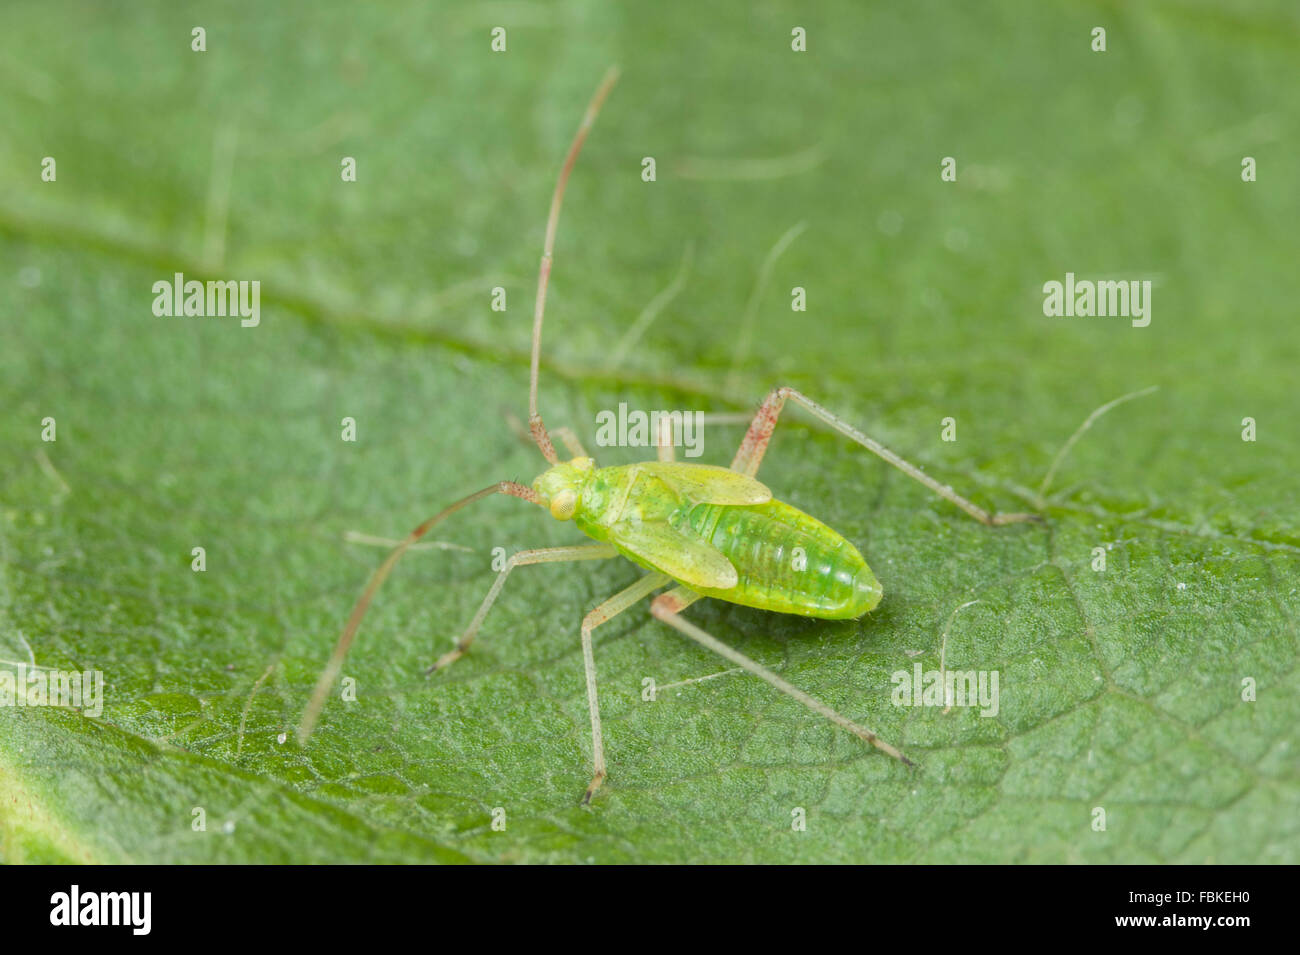 Mirid bug nymph (juvenile) Stock Photo